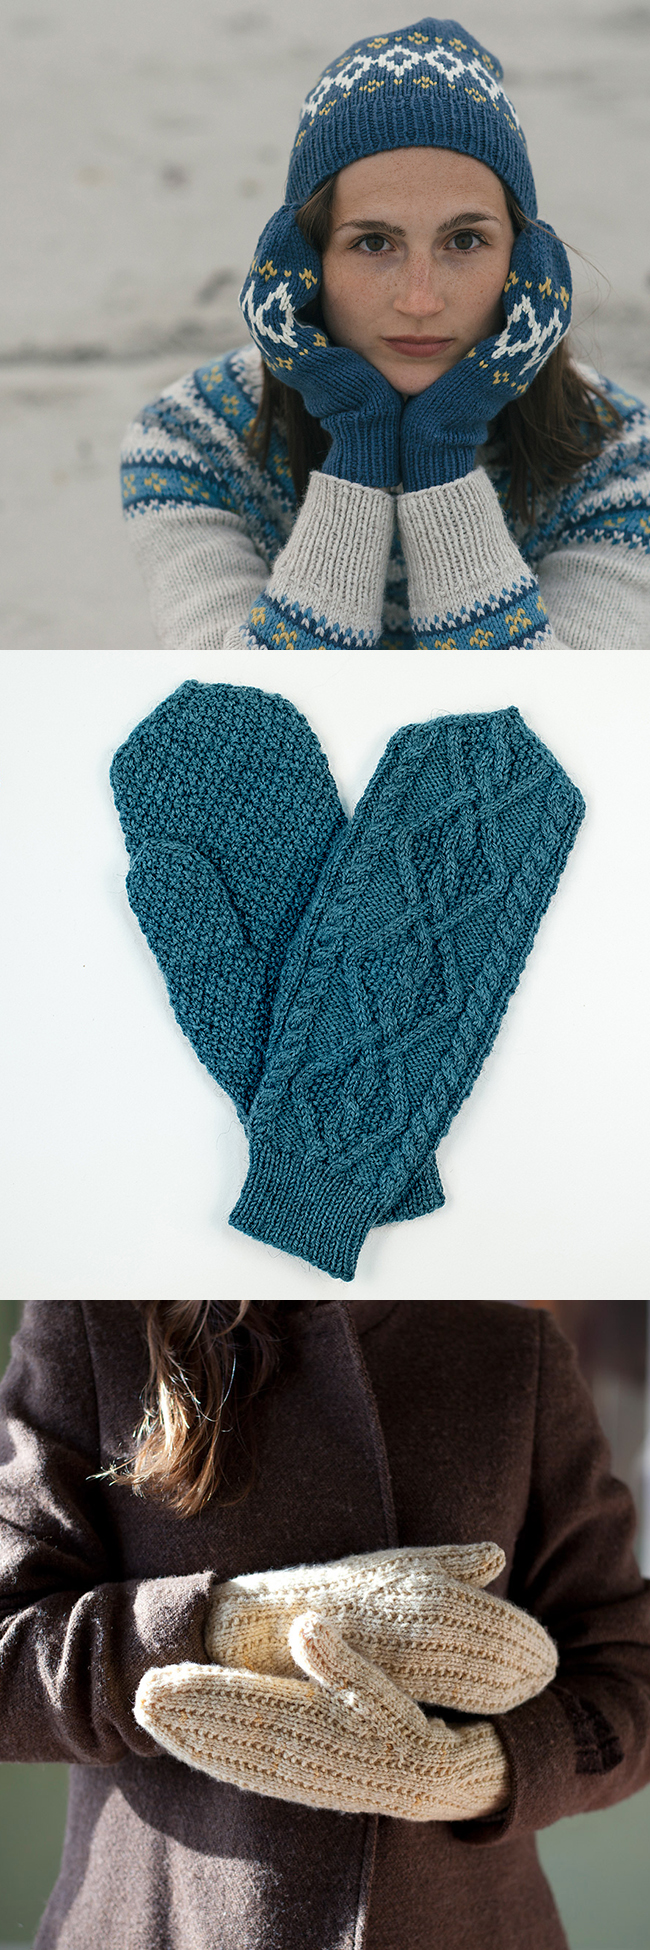 New Favorites: Mitten mania